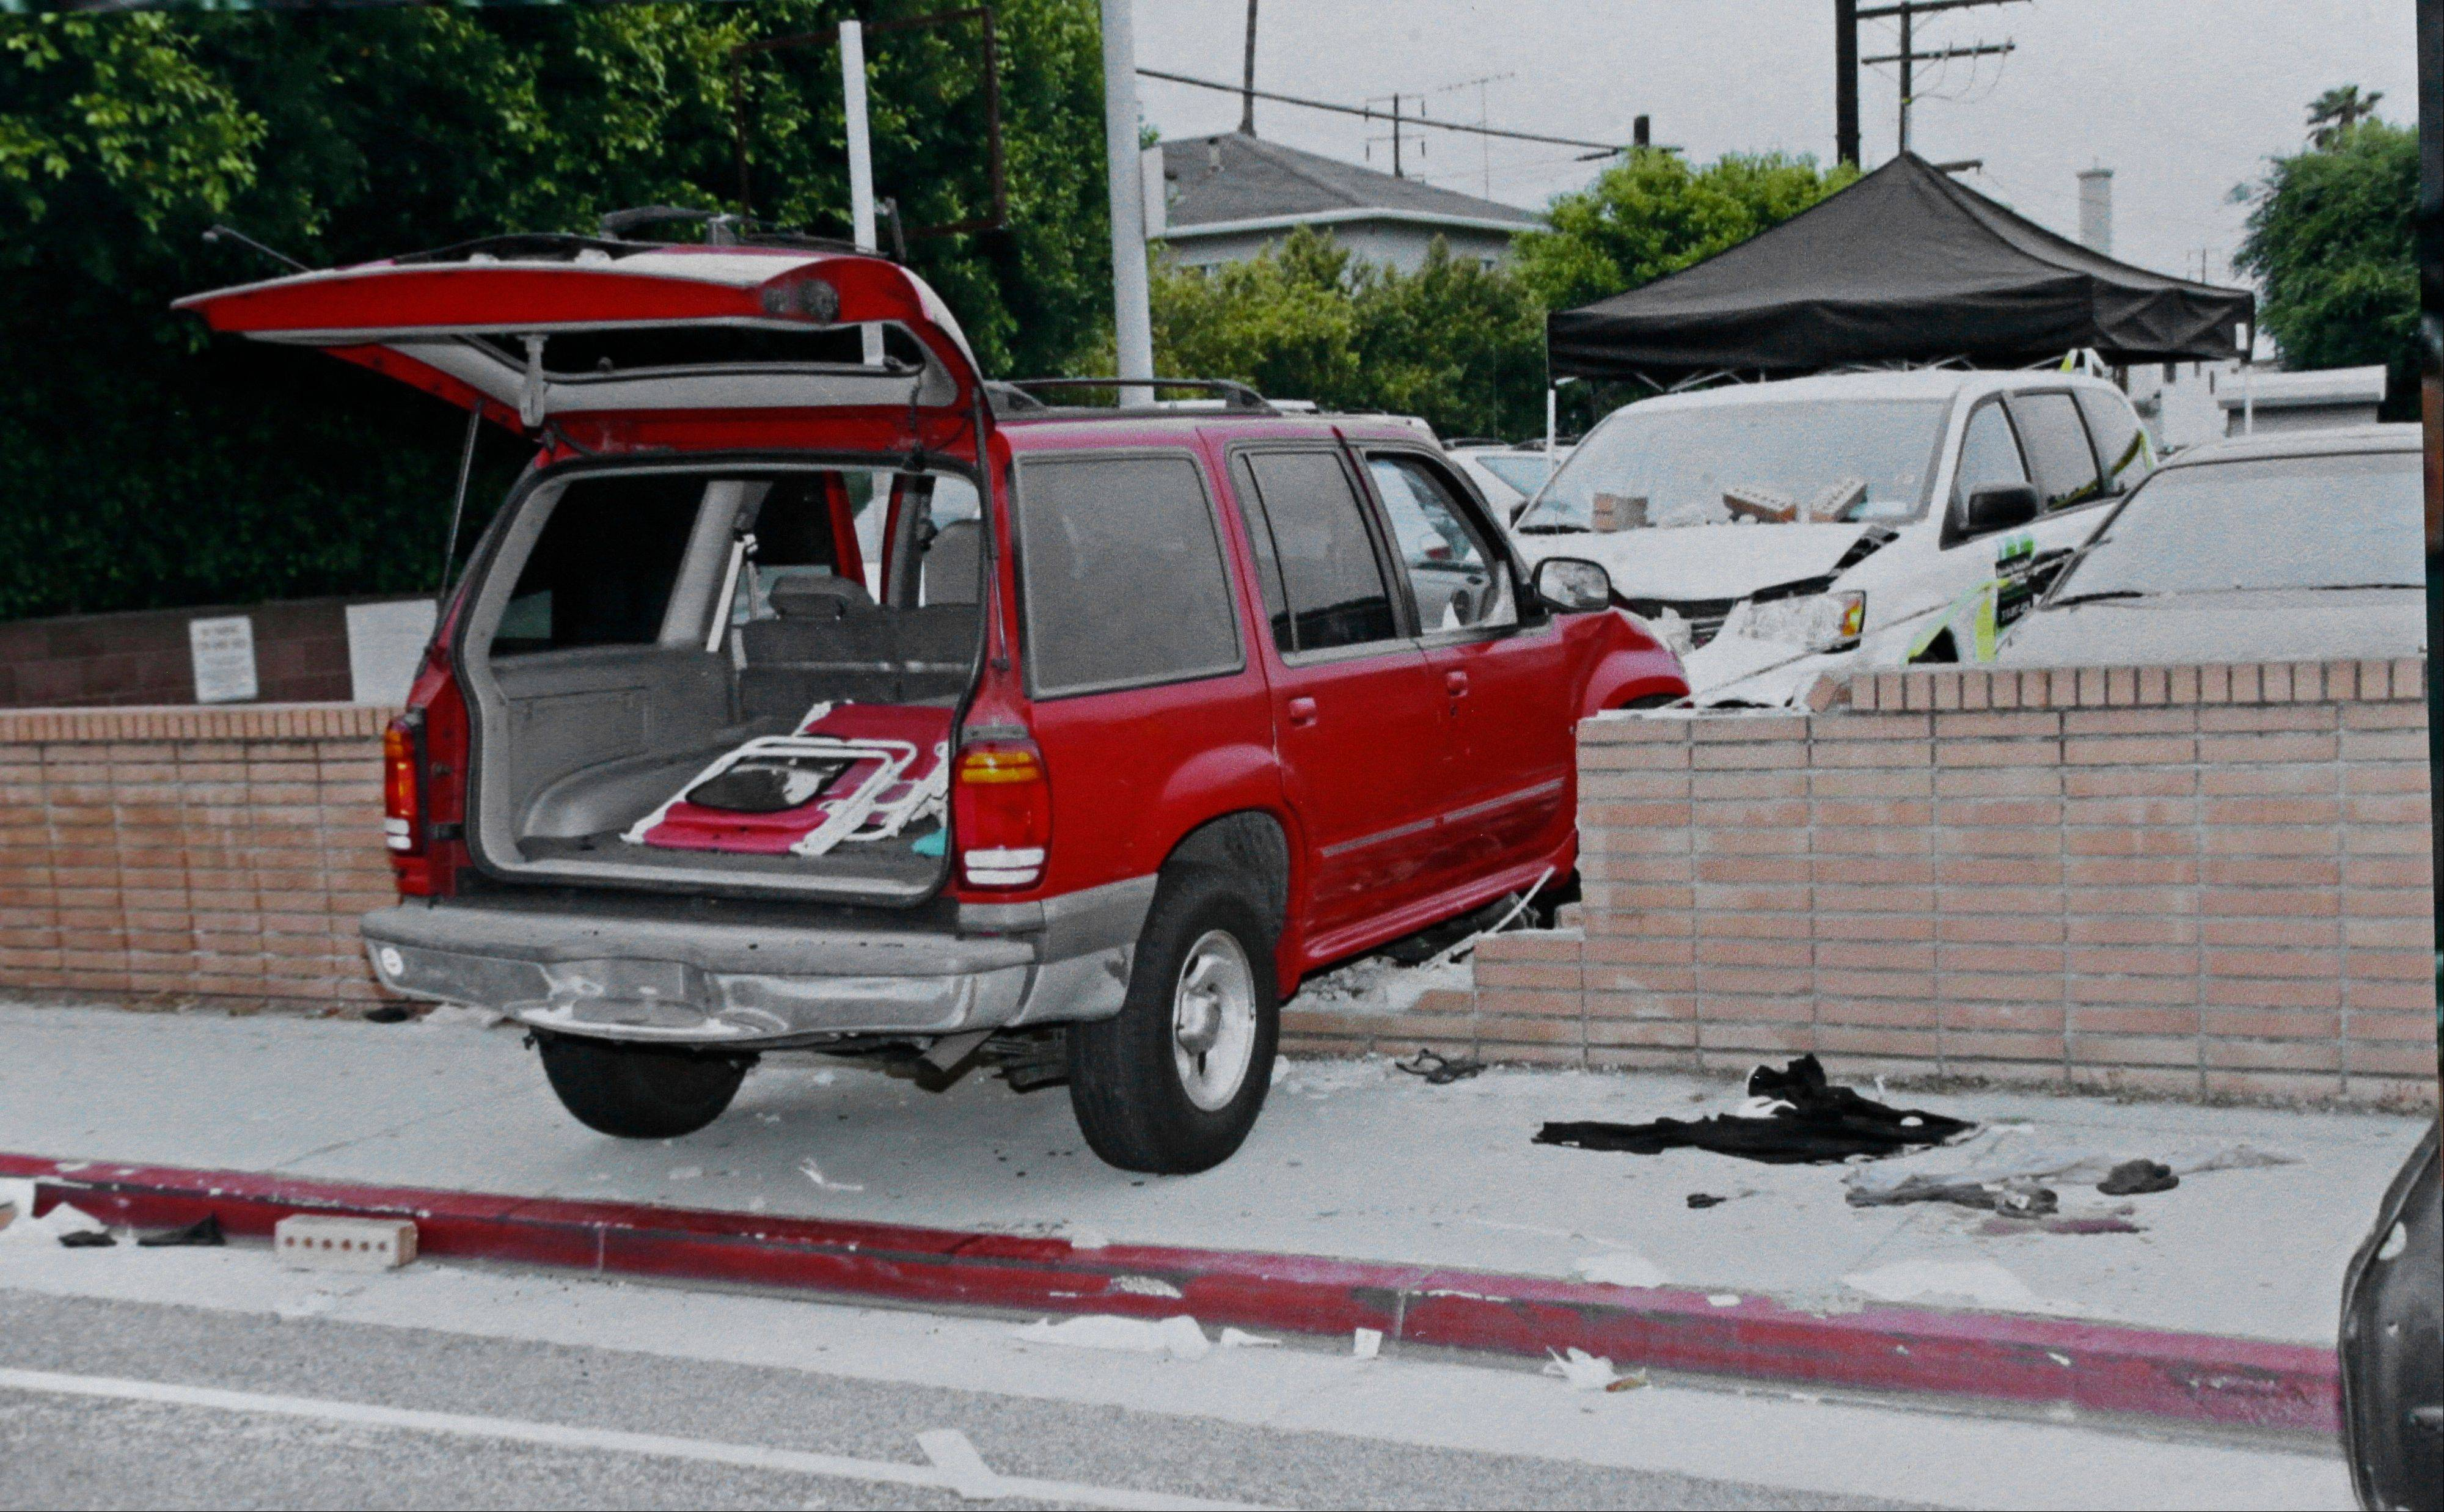 An evidence photo showing the SUV in which Carlos Franco and his daughter Marcela Franco were shot and killed is among several new evidence photos of the June 9 shooting rampage by John Zawahri that were released by the Santa Monica, Calif., Police Department at a news conference Thursday